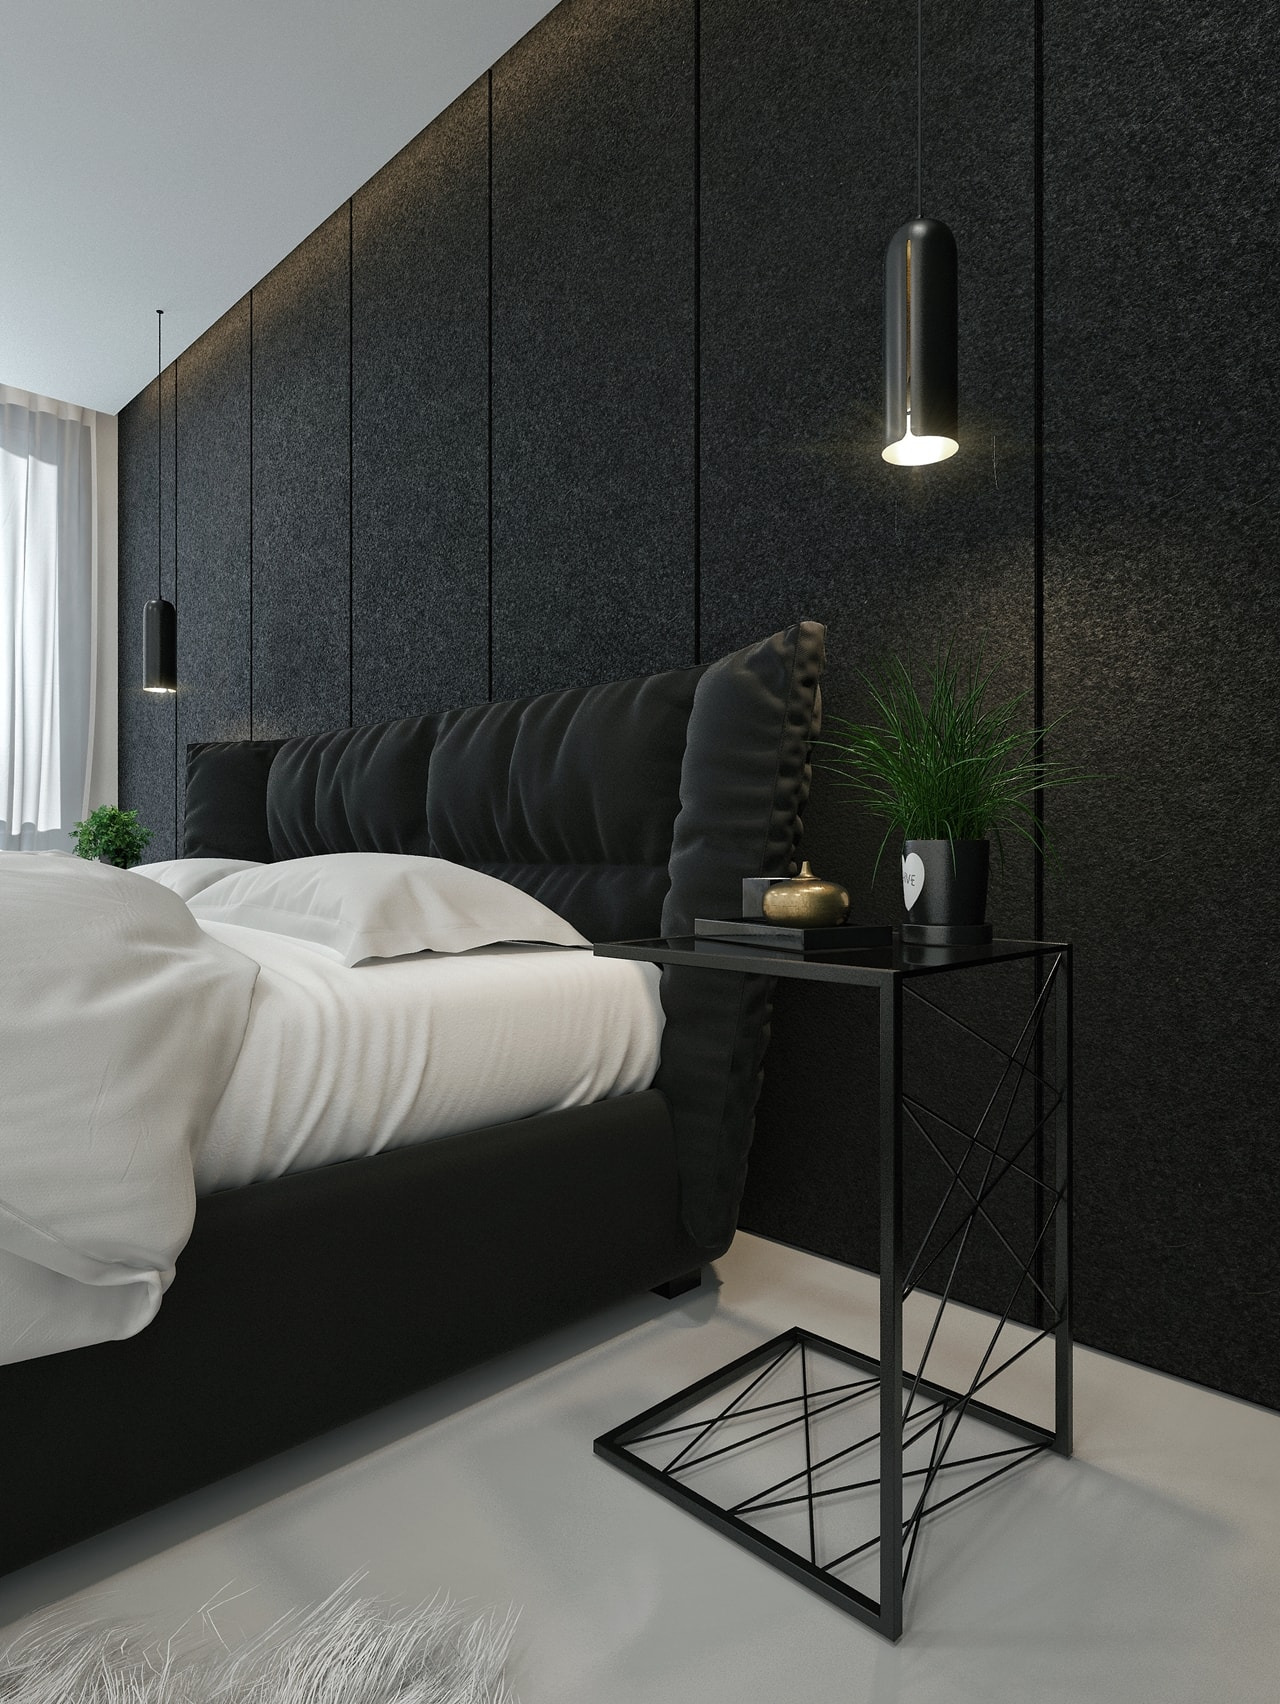 black and white interior design ideas modern apartment by id white on architecture beast 11 min